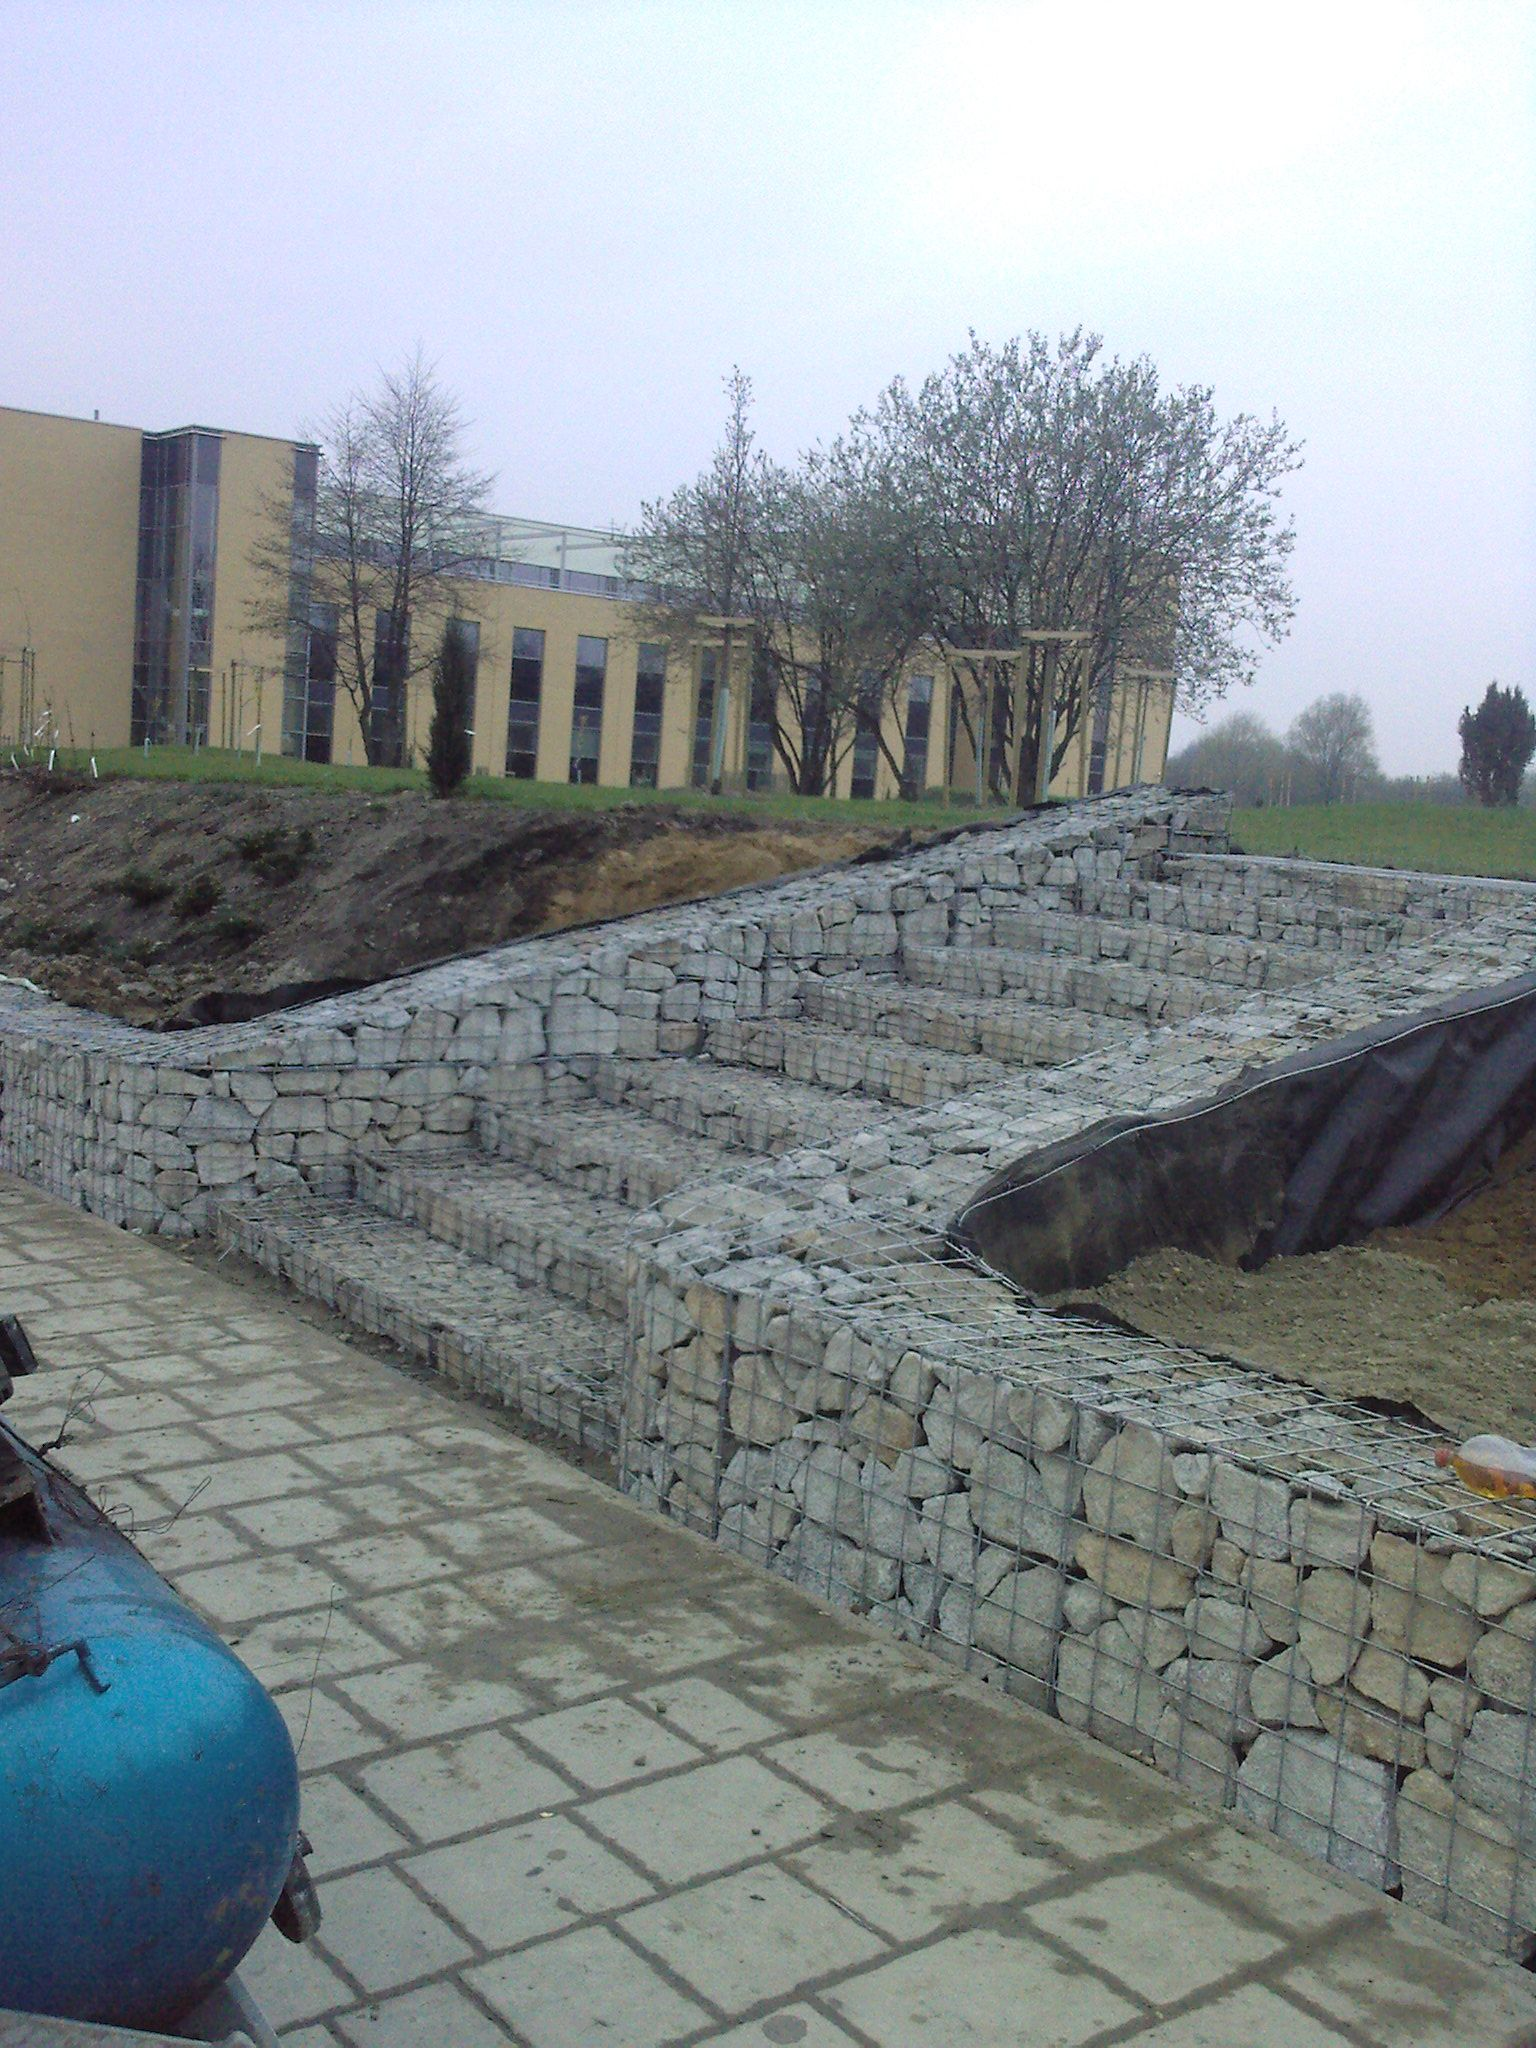 Pingl par christian thiel sur architecture pinterest for Decoration jardin gabion